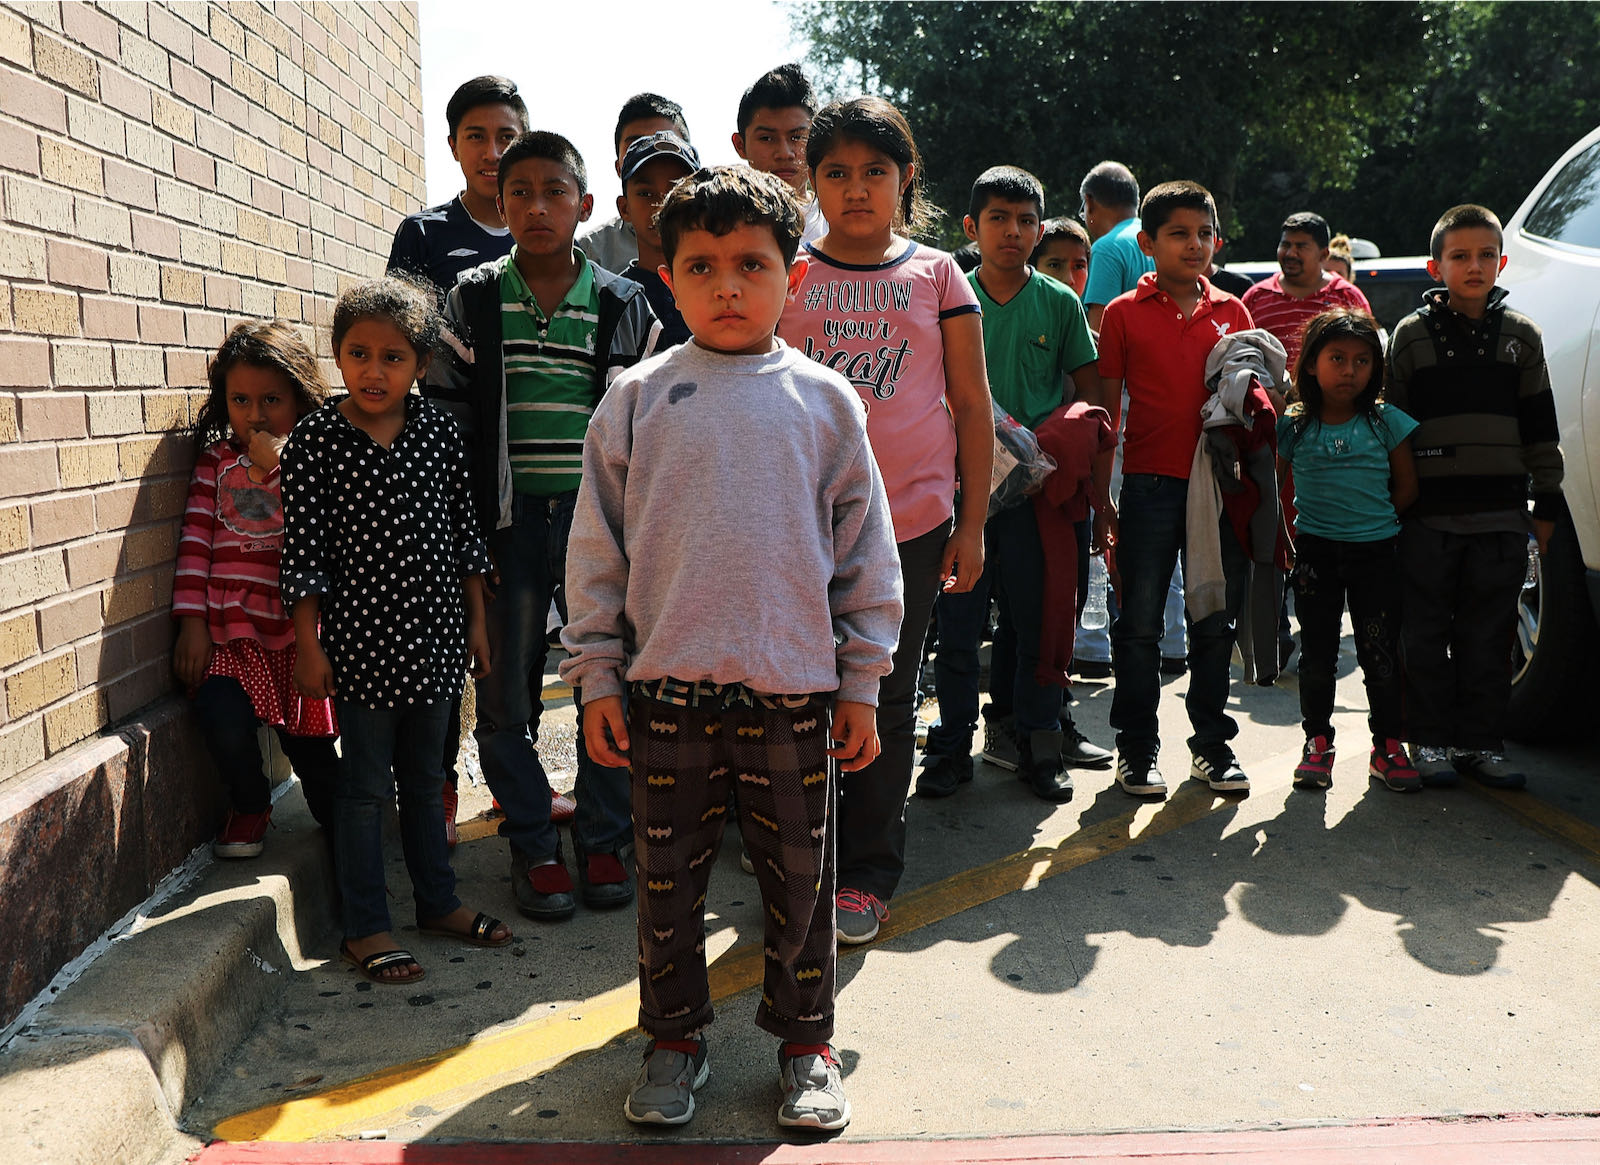 Central American migrant children waiting for assistance, McAllen, Texas, 2018